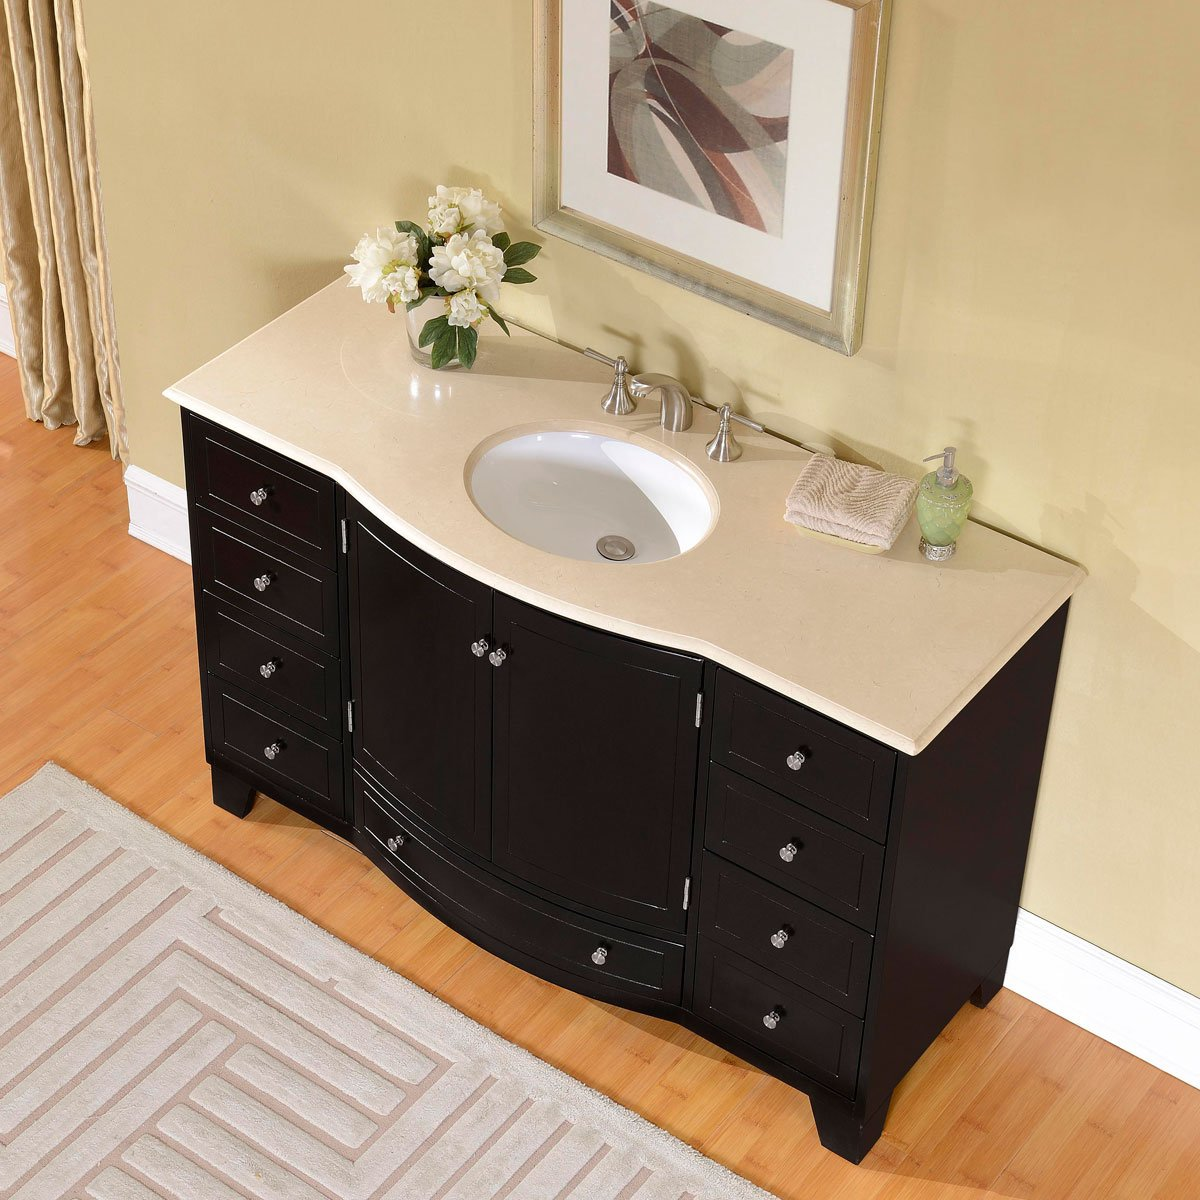 Amazon.com: Silkroad Exclusive Cream Marble Top Single White Sink Bathroom  Vanity With Espresso Cabinet, 55 Inch: Home U0026 Kitchen